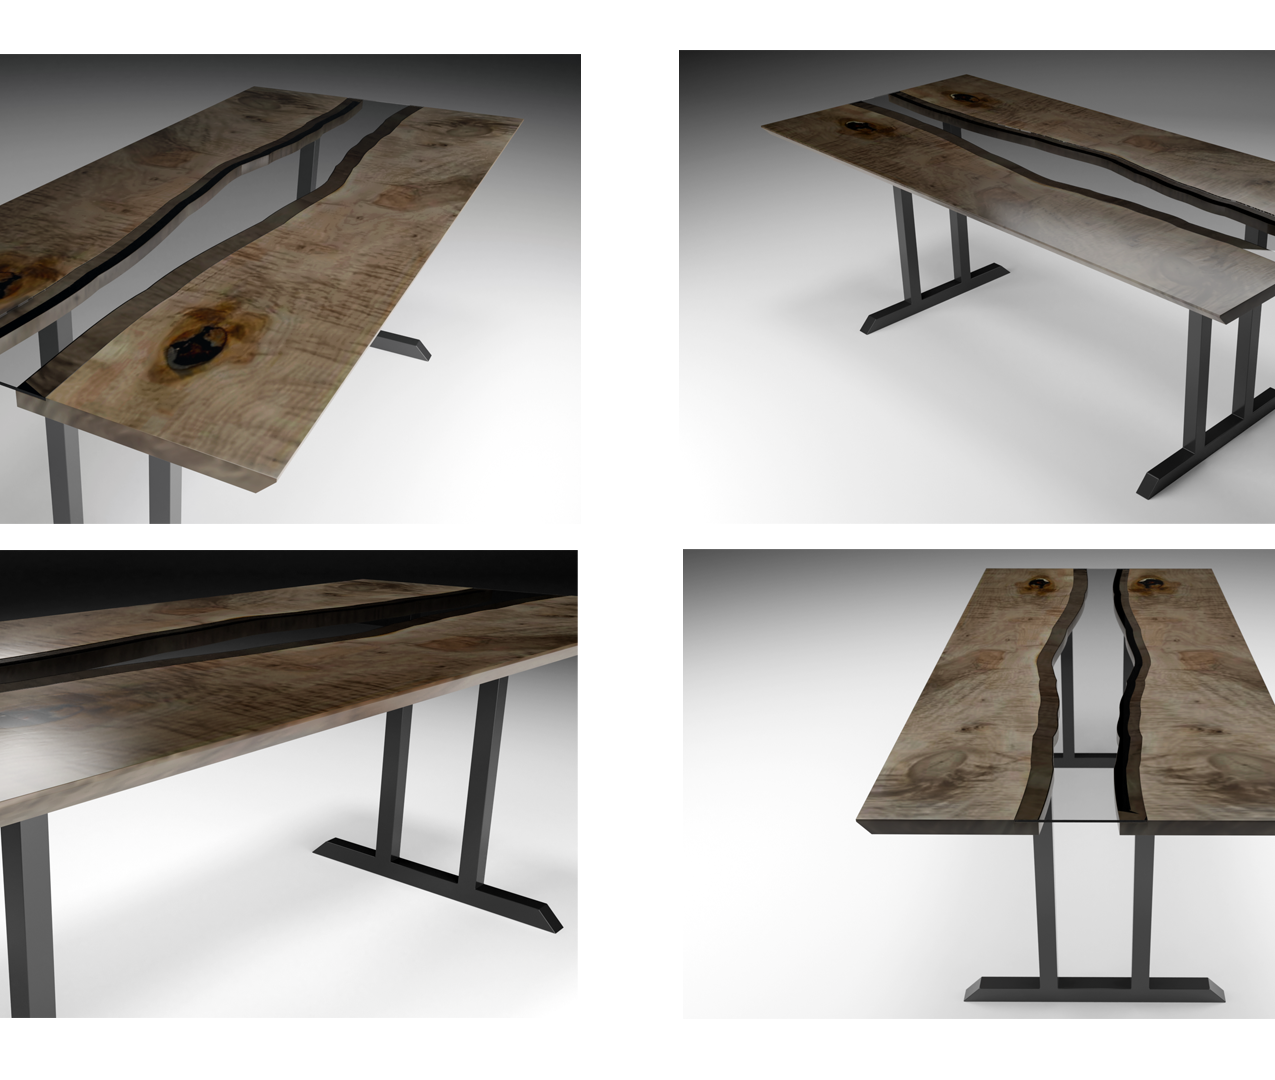 River table rendering by Richard Engstrom